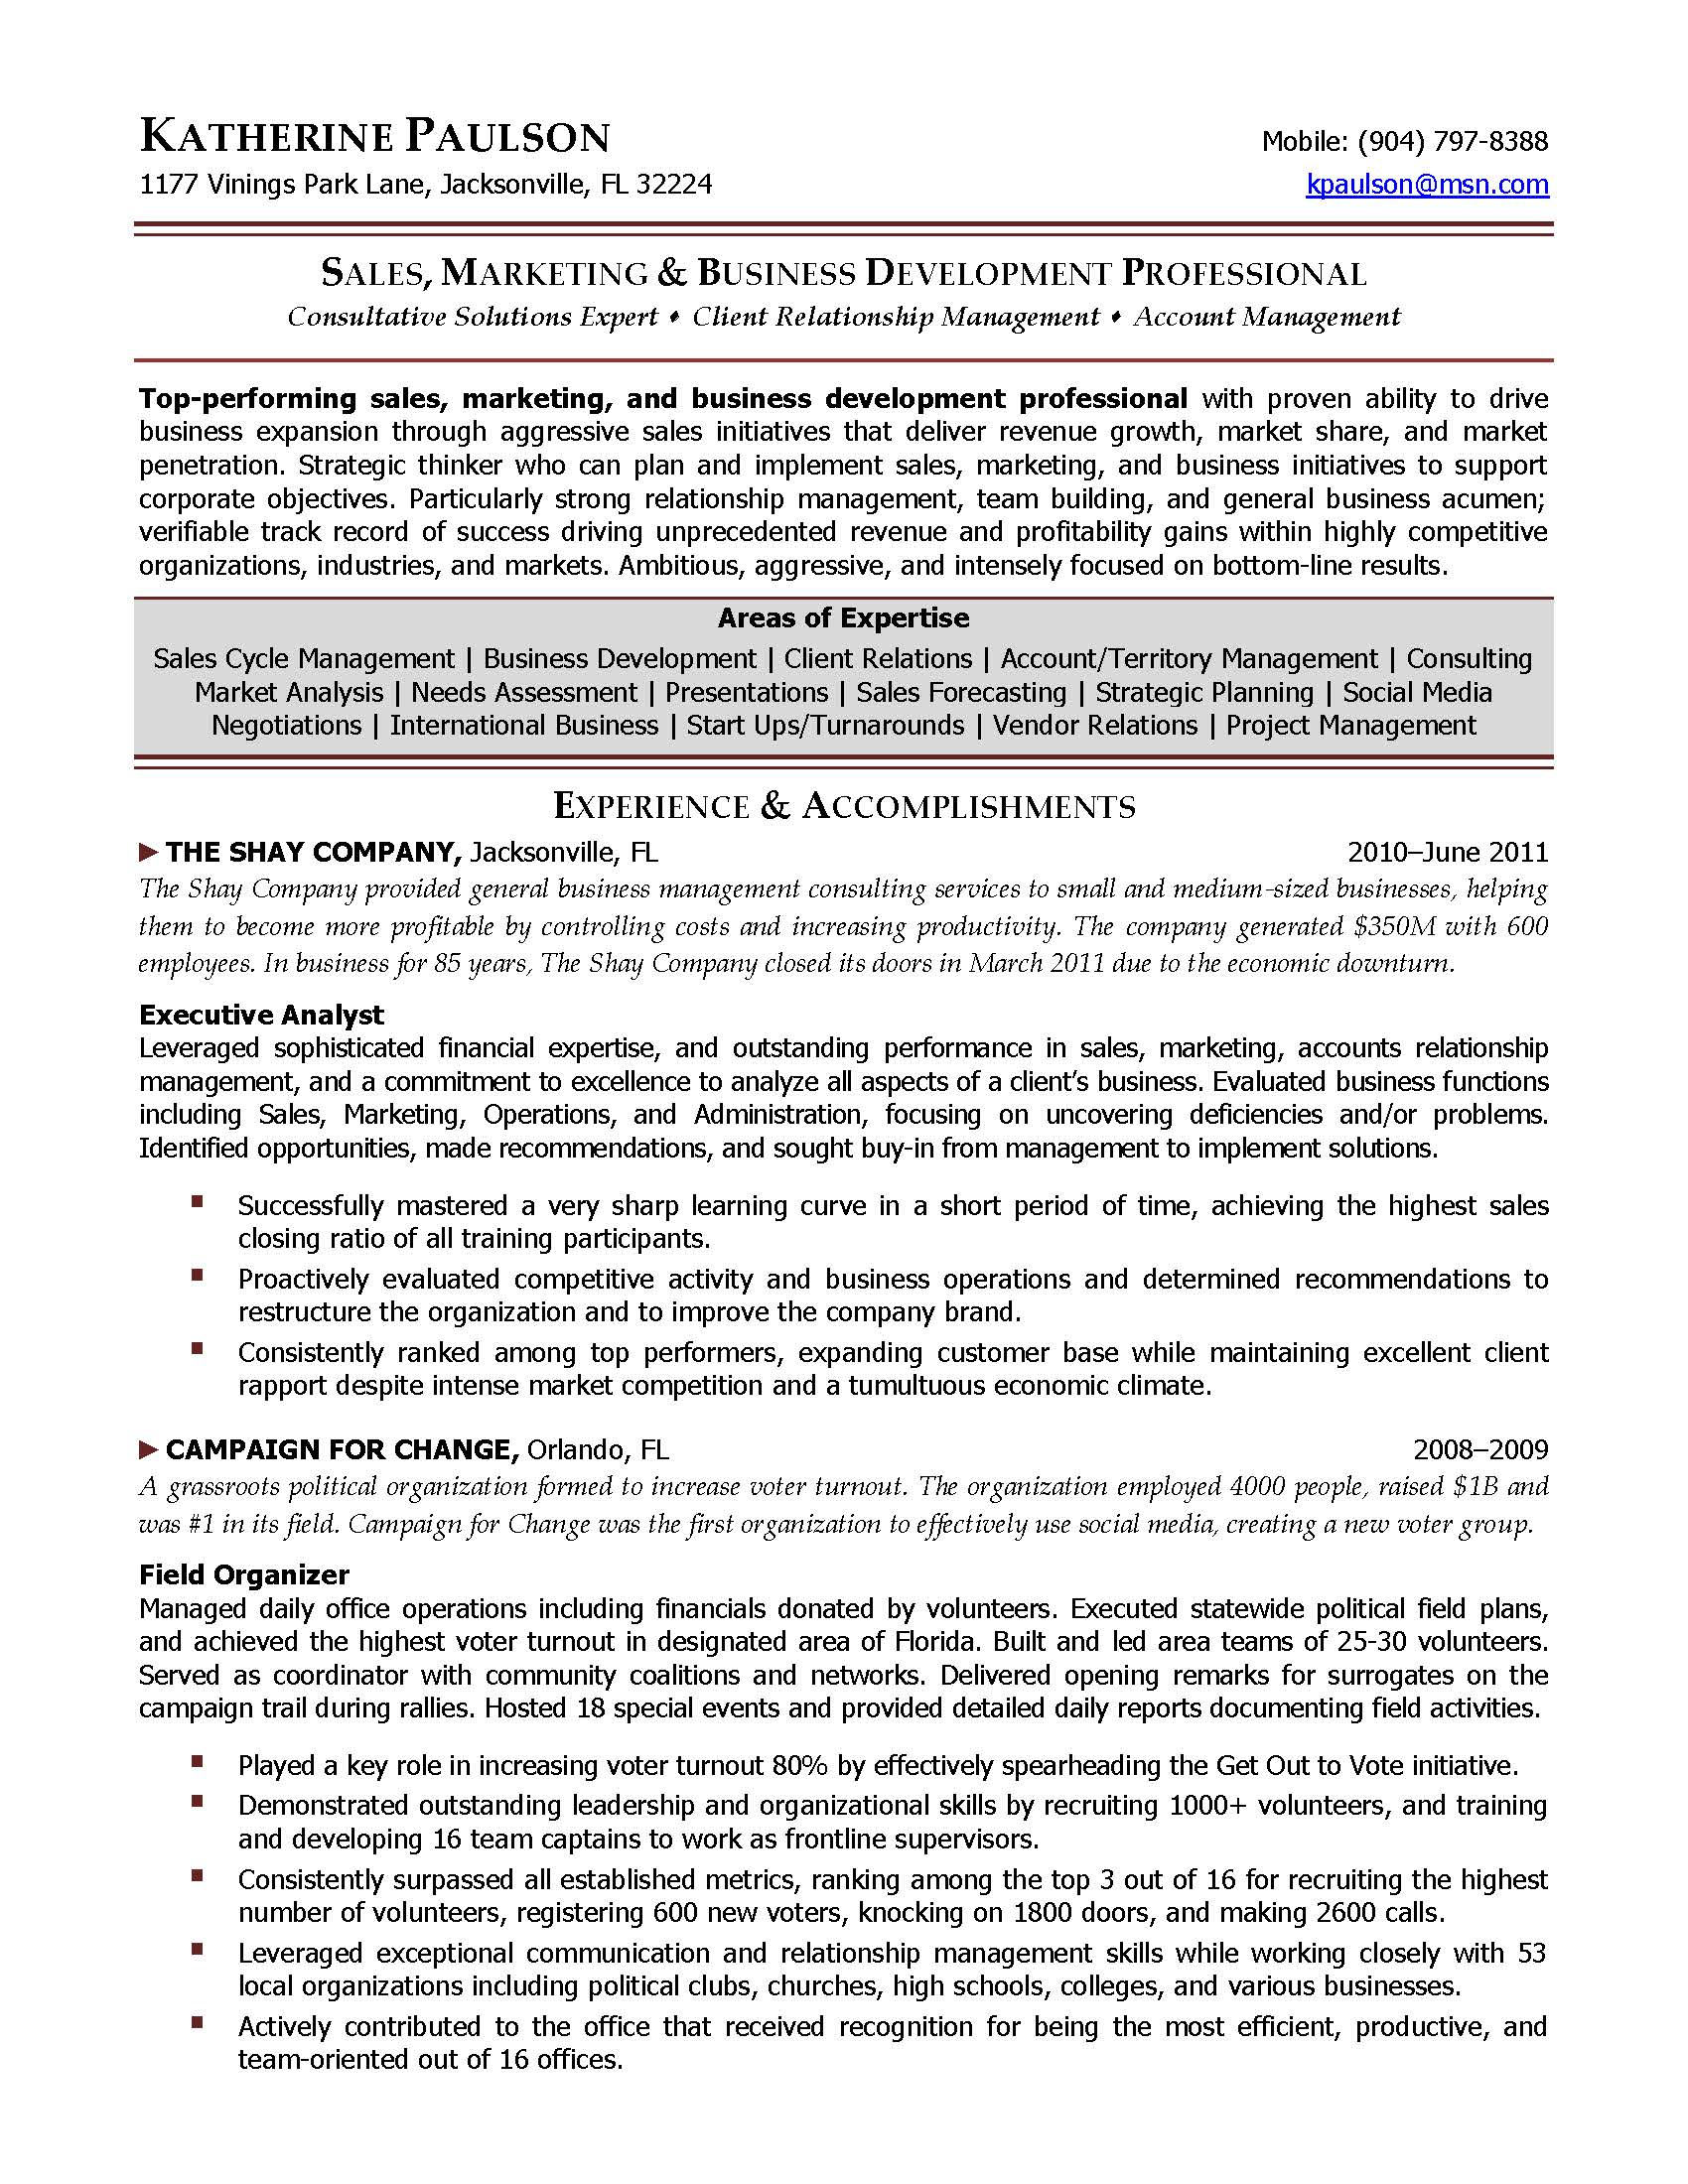 Business Development Director Resume Sample, Provided By Elite Resume  Writing Services  Marketing Director Resume Sample